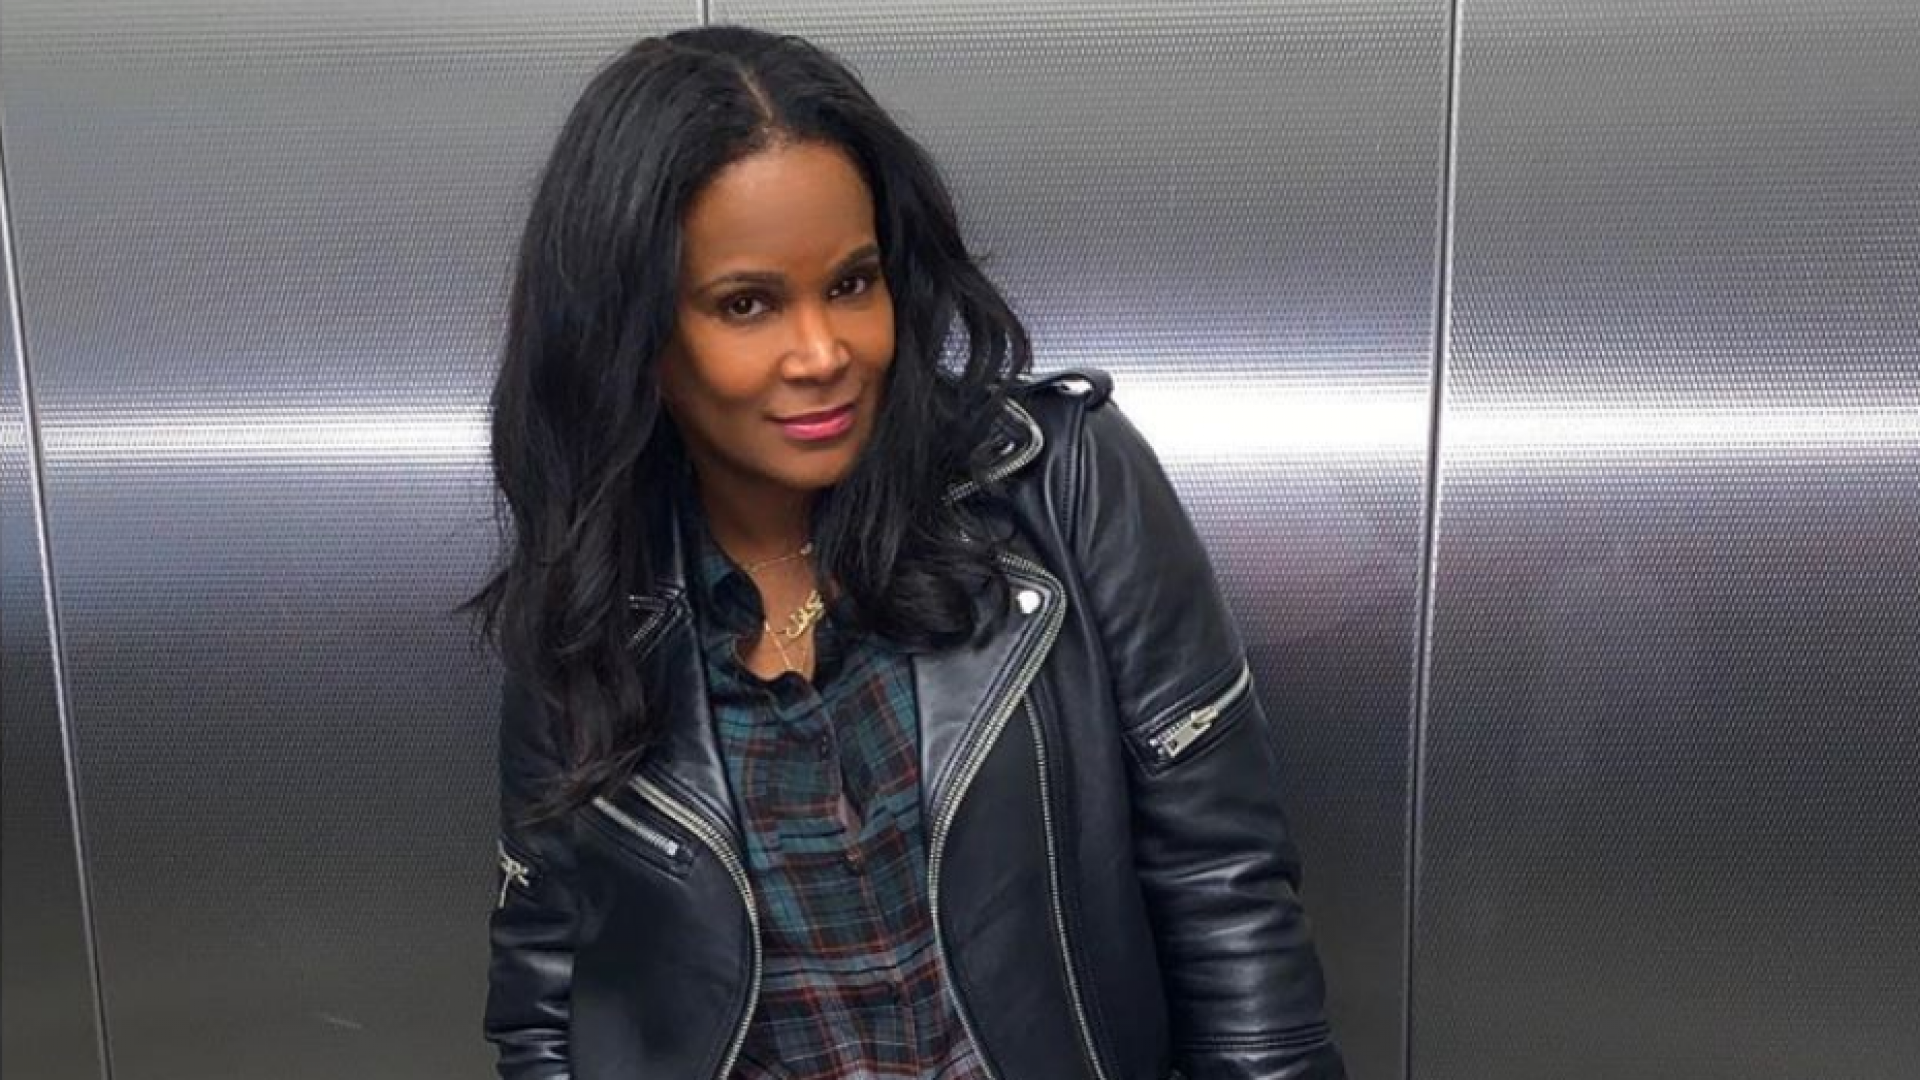 Tameka Foster Raymond On Finding Positivity After Losing Son Kile Glover